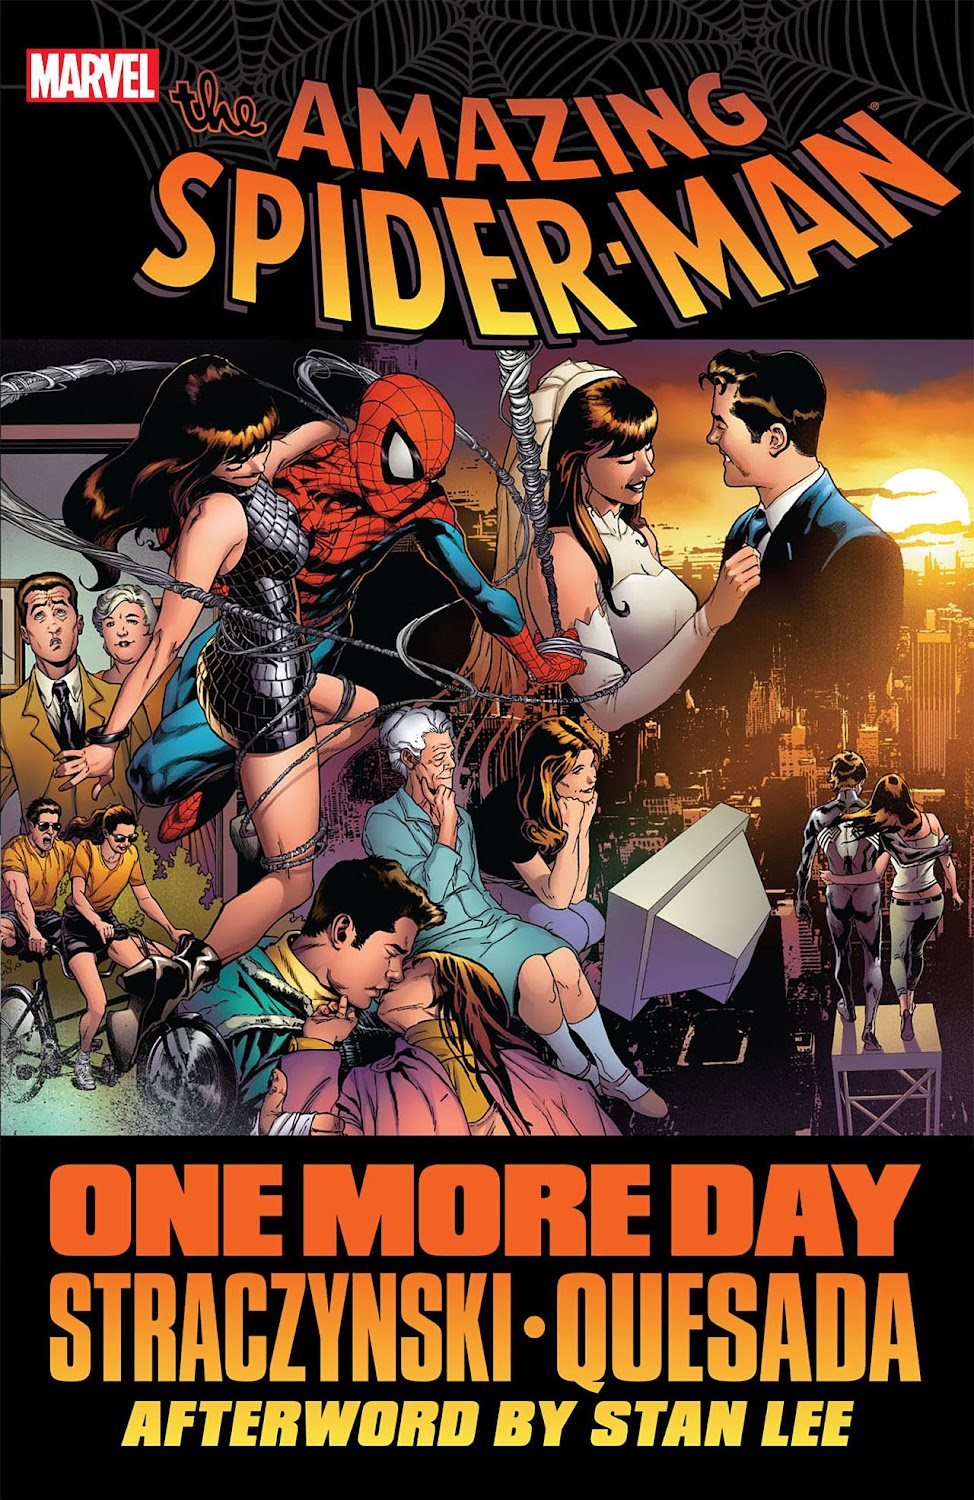 The Amazing Spider-Man - One More Day (2008)